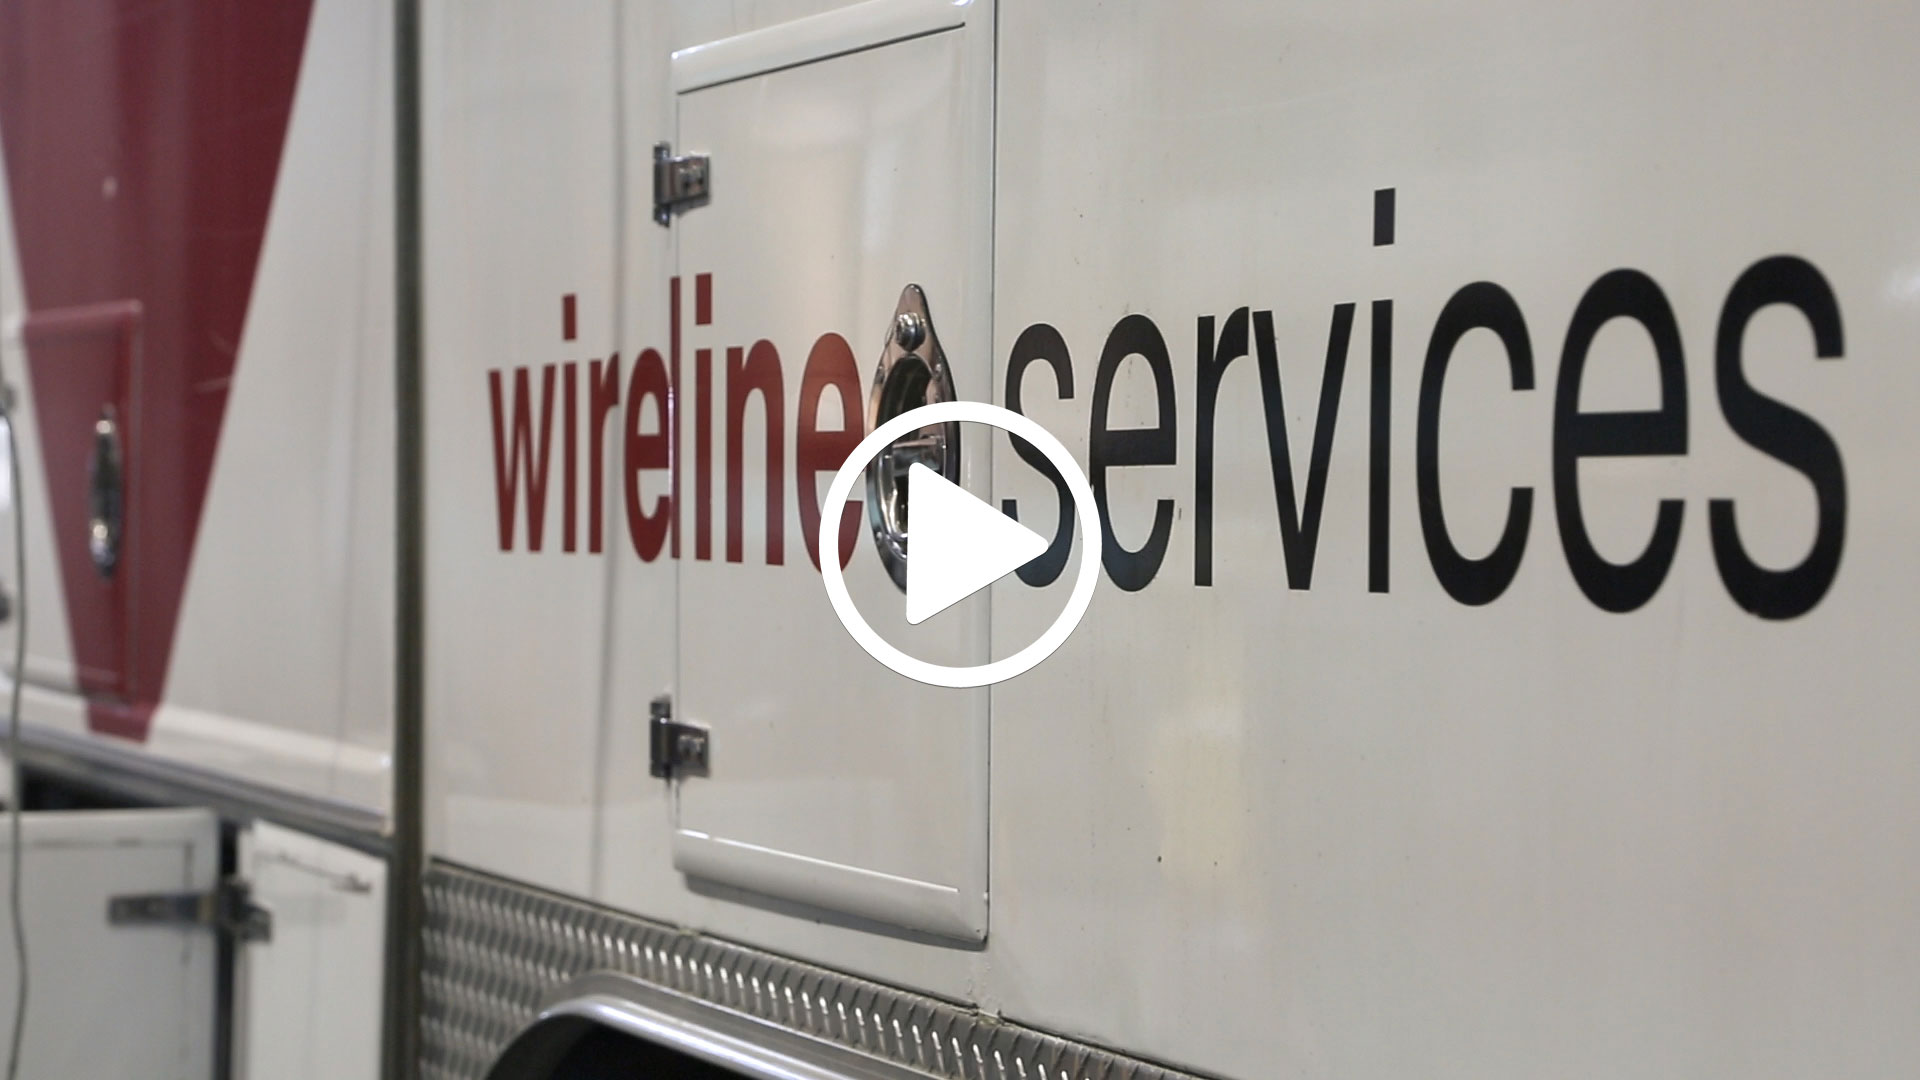 Watch our careers video for available job opening Wireline Field Operator in Broussard, LA